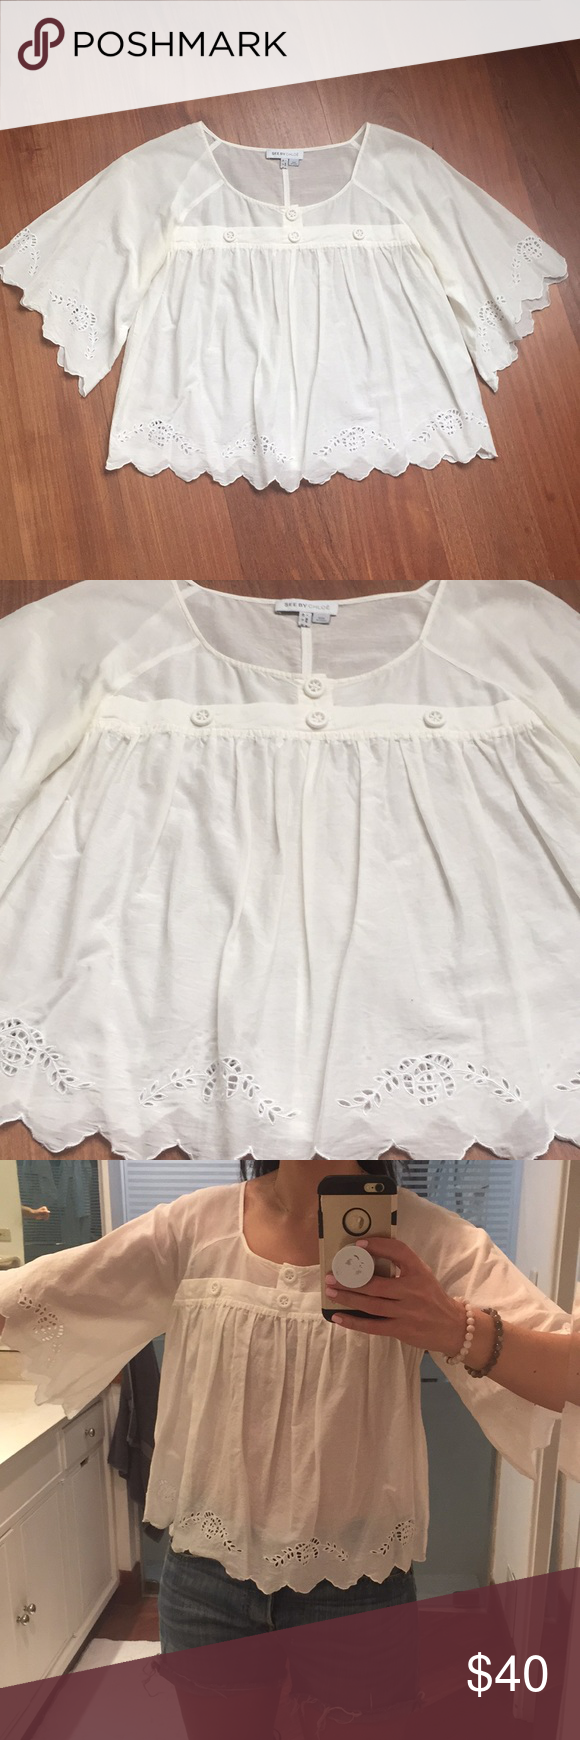 c3d2a0afb5019 See By Chloe White Boho Eyelet Boxy Top Us Sz 6 A slightly sheer white  cotton